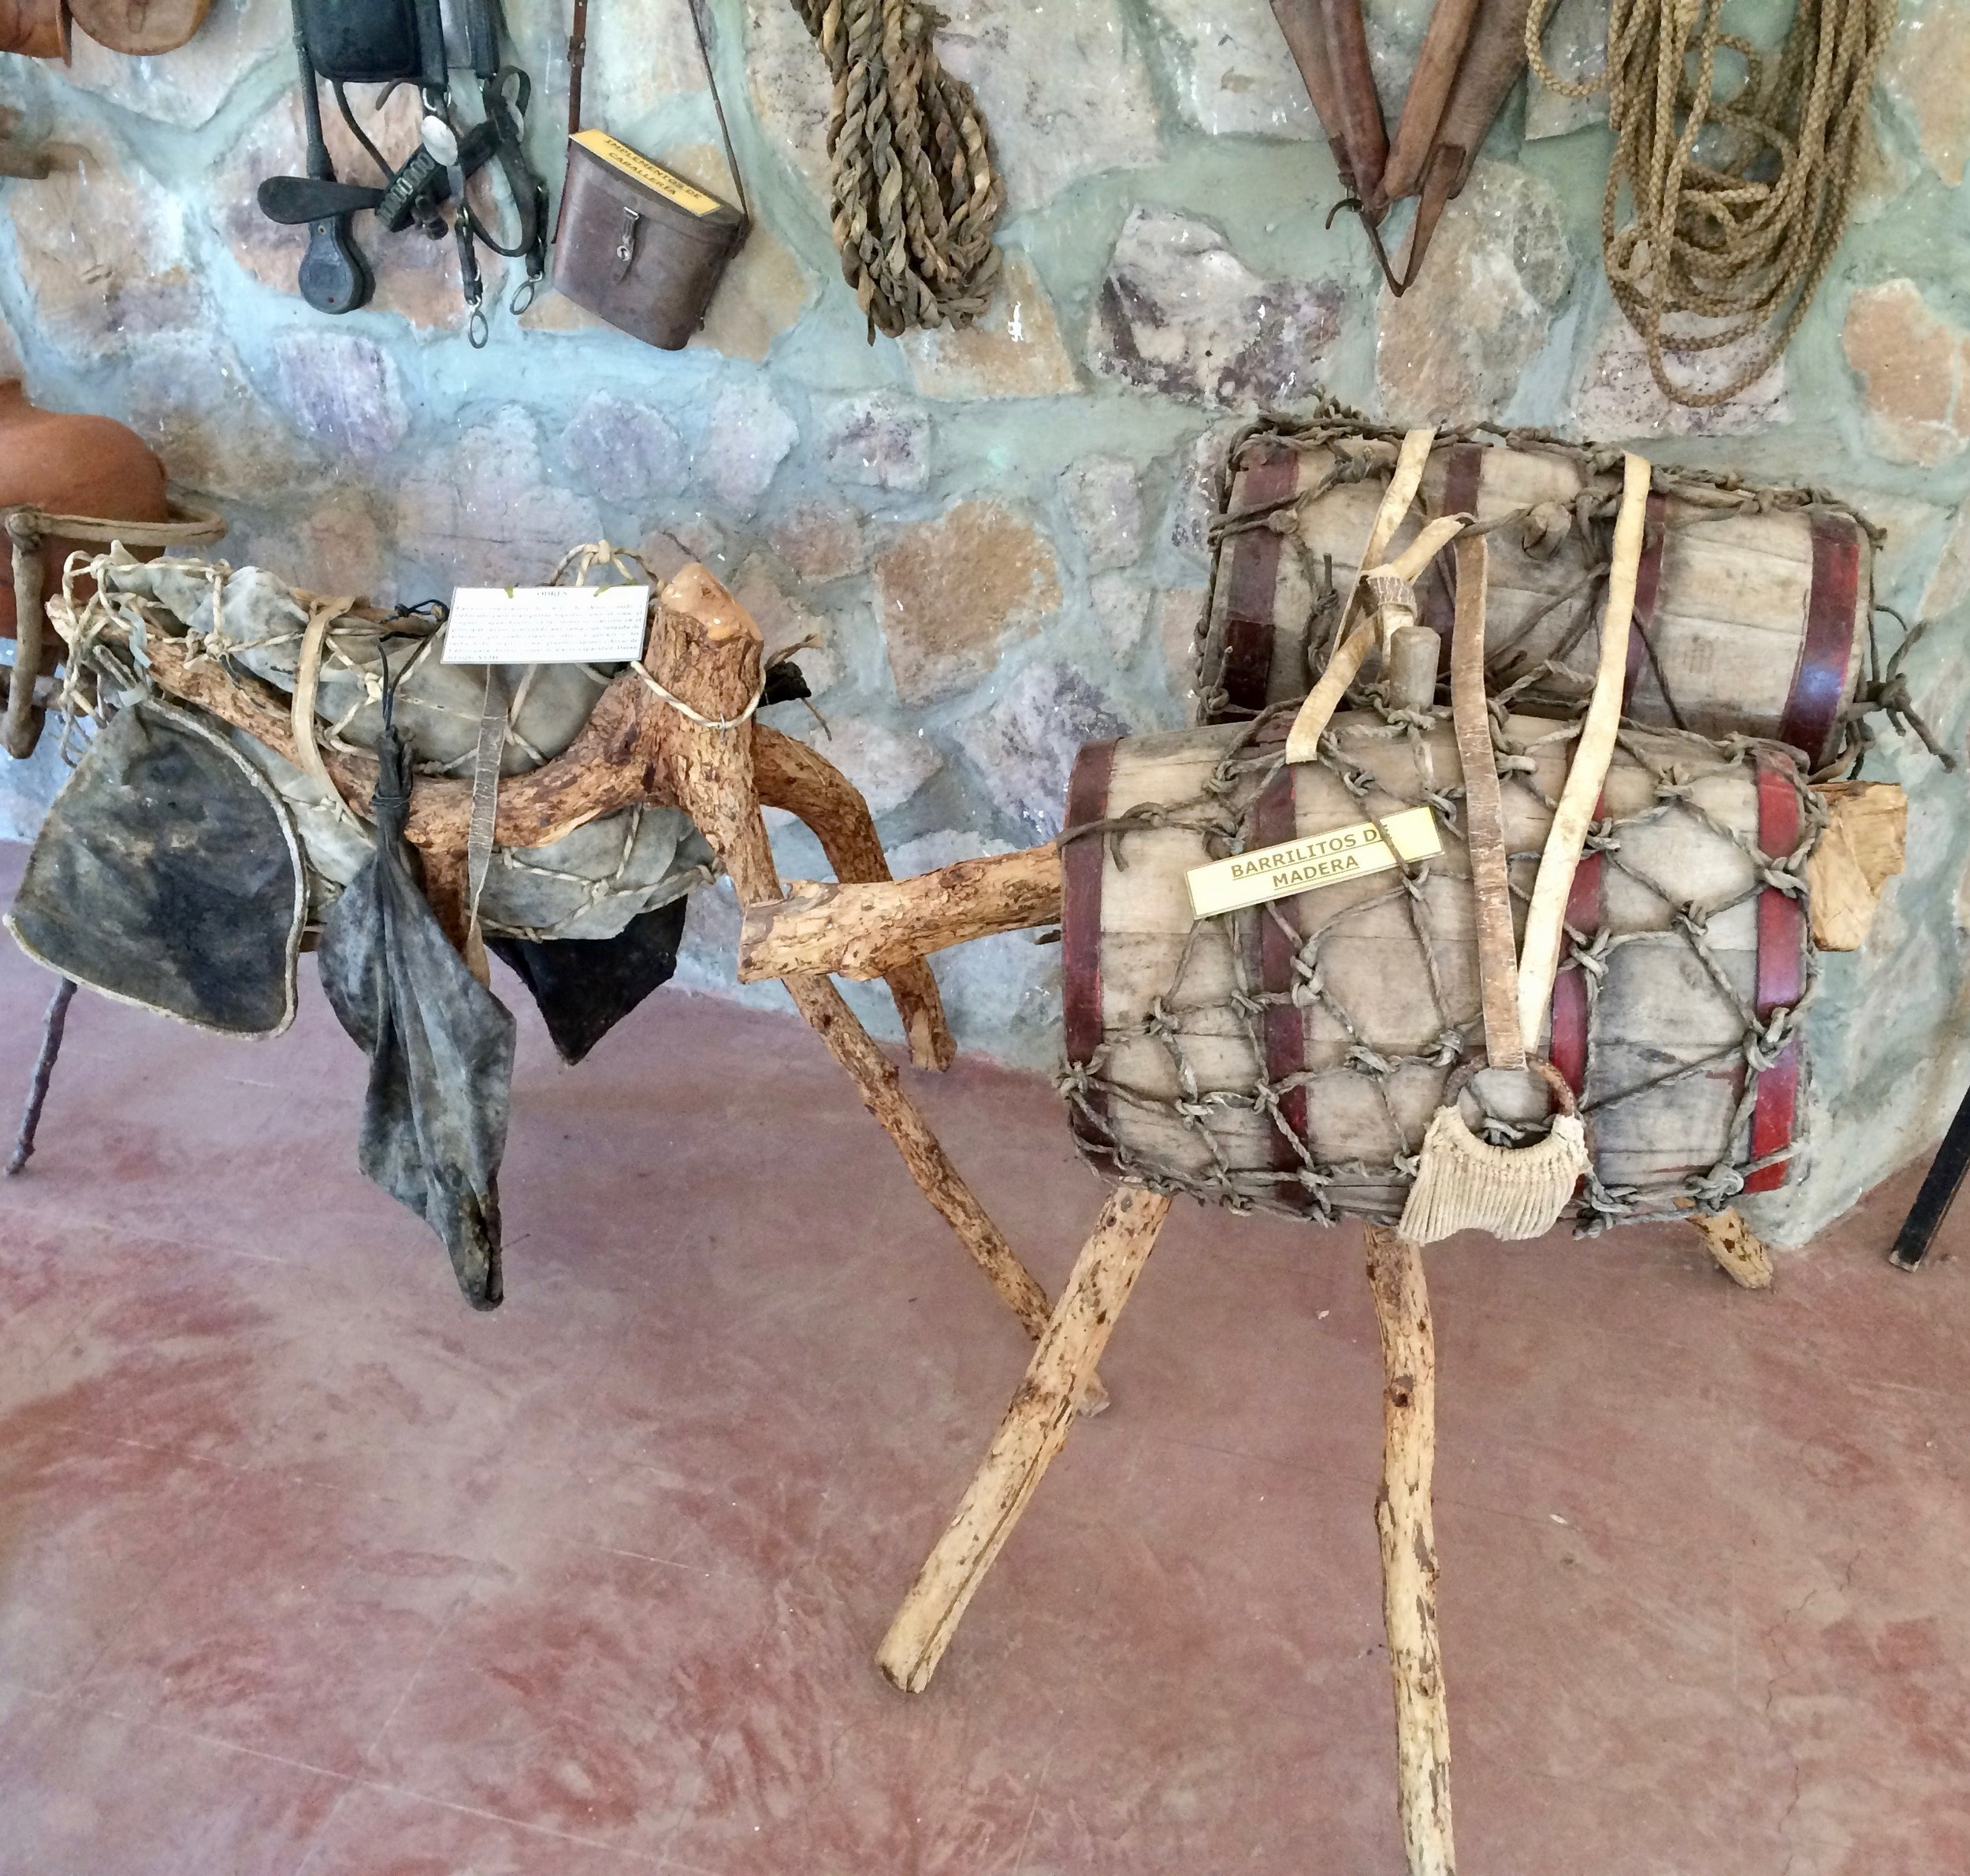 An exhibit in the Ethno-Anthropological Museum of Cinti, located in Camargo, Chuquisaca showing the evolution of containers for the transportation of wine and Singani from clay pot and pouches made of animal skins or intestines, and eventually wooden barrels.